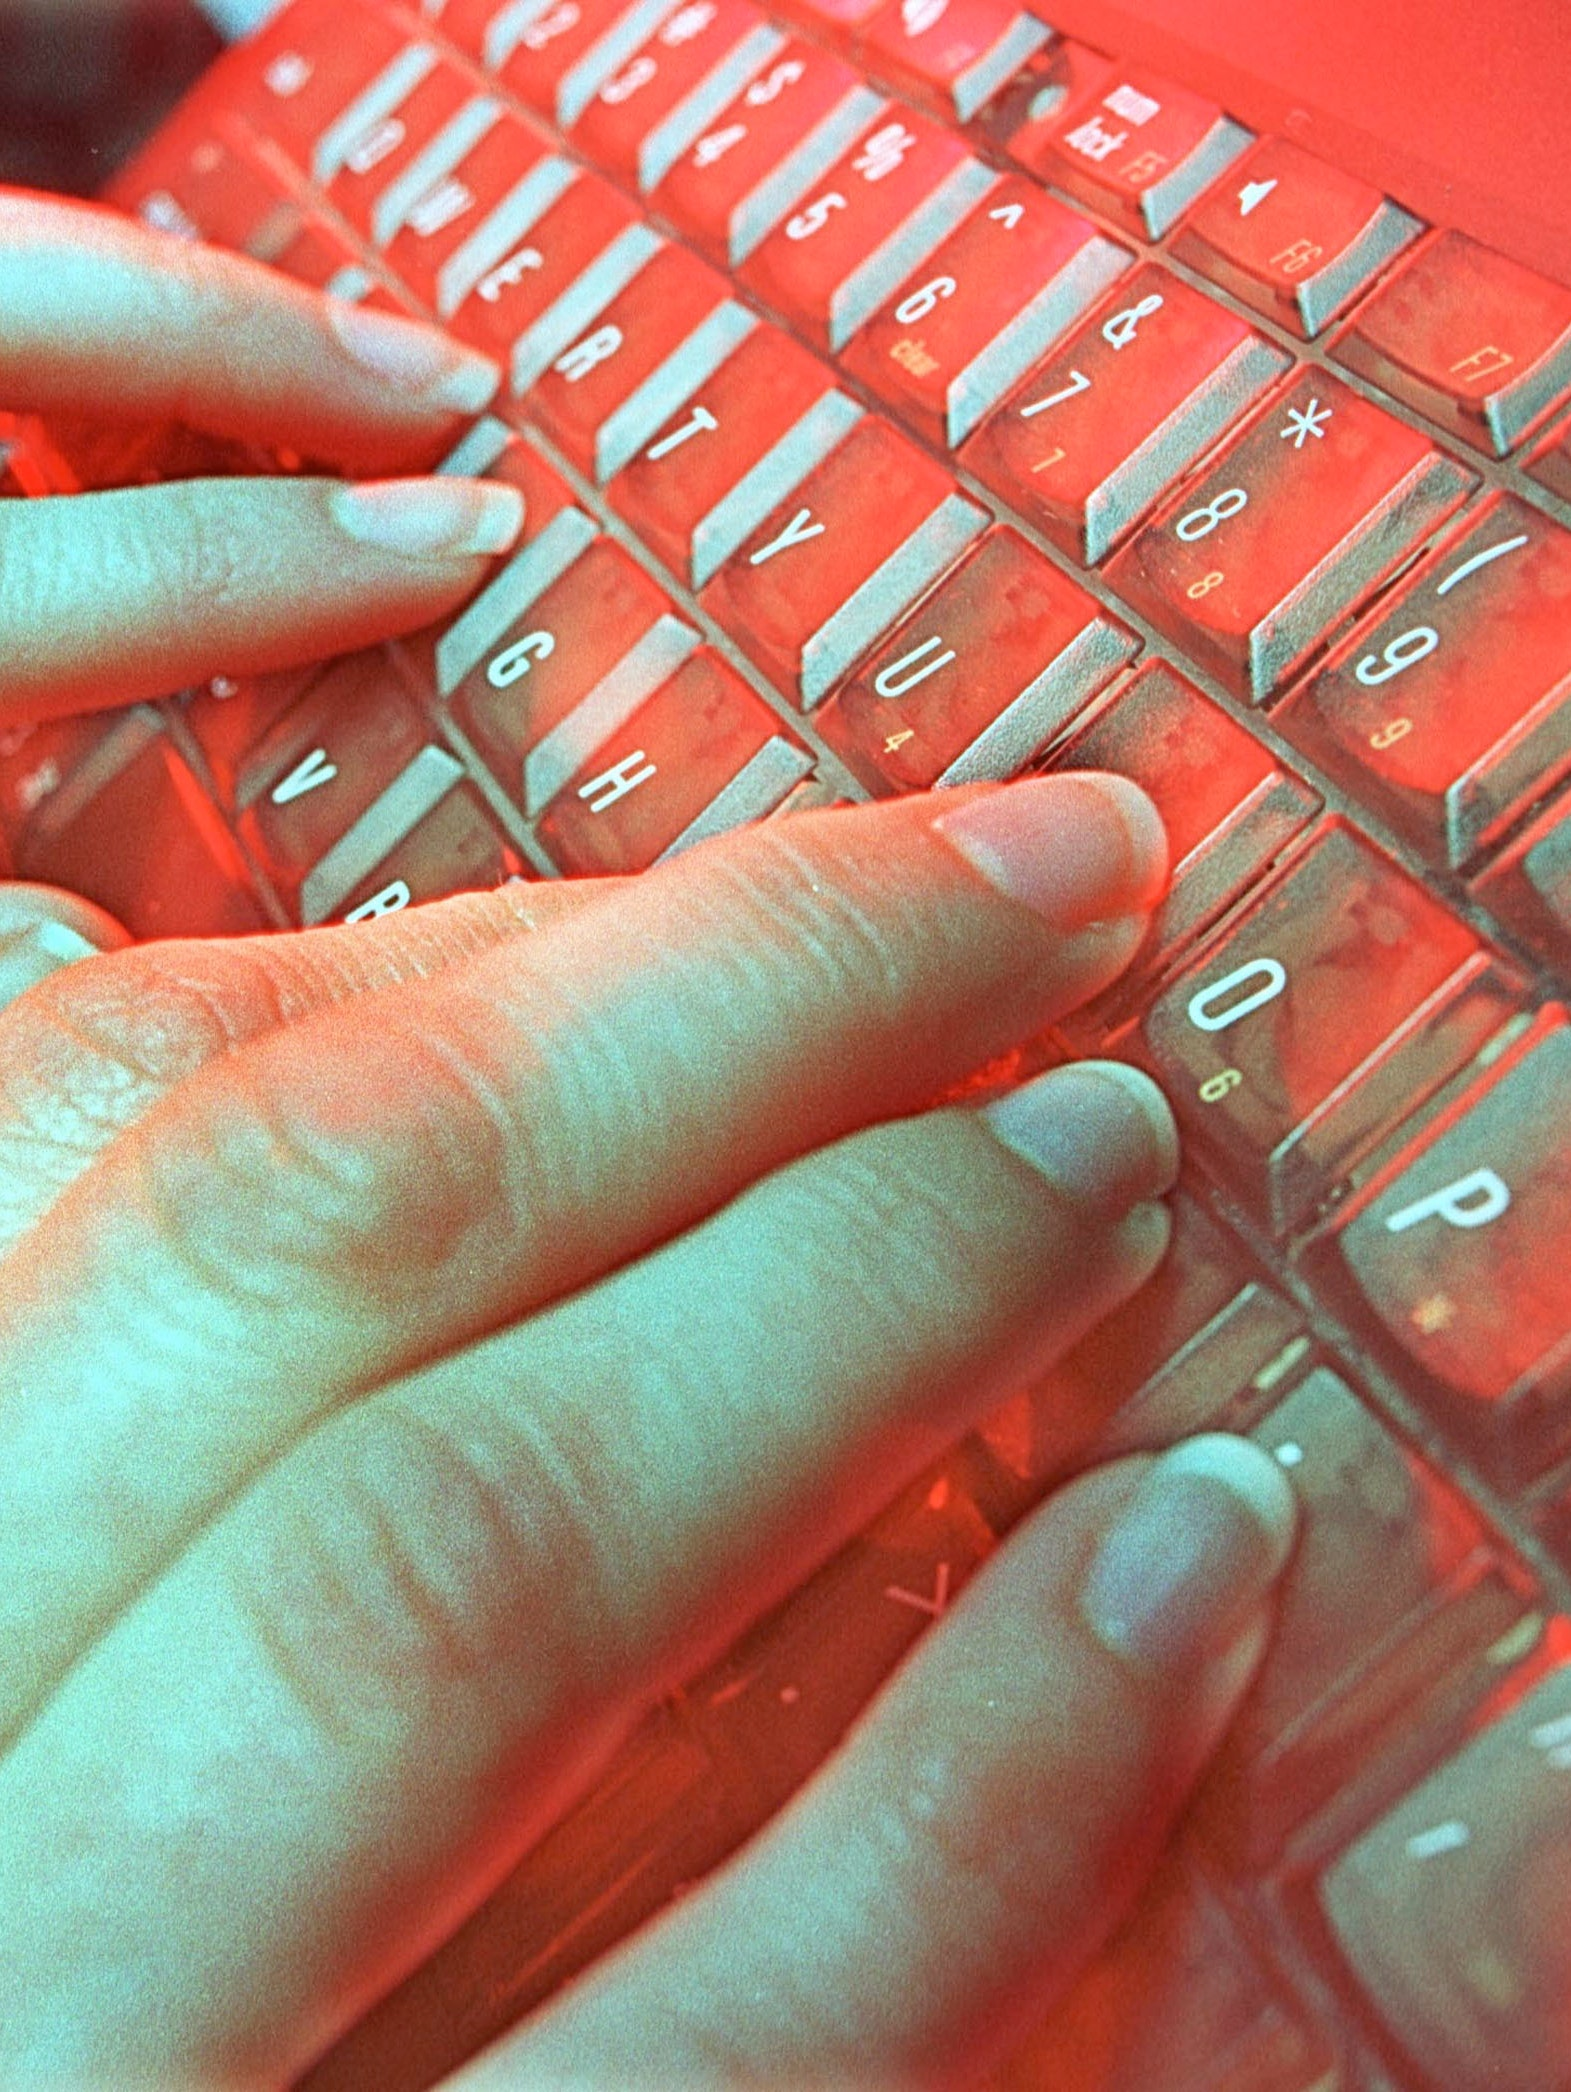 A photo illustration depicts a person typing May 4, 2001 in Denver, CO. National Academy of Sciences estimates that musculoskeletal disorders such as carpal-tunnel syndrome, tendinitis, and lower back pain cost the nation $45 billion to $54 billion in compensation, lost wages, and lower productivity each year.